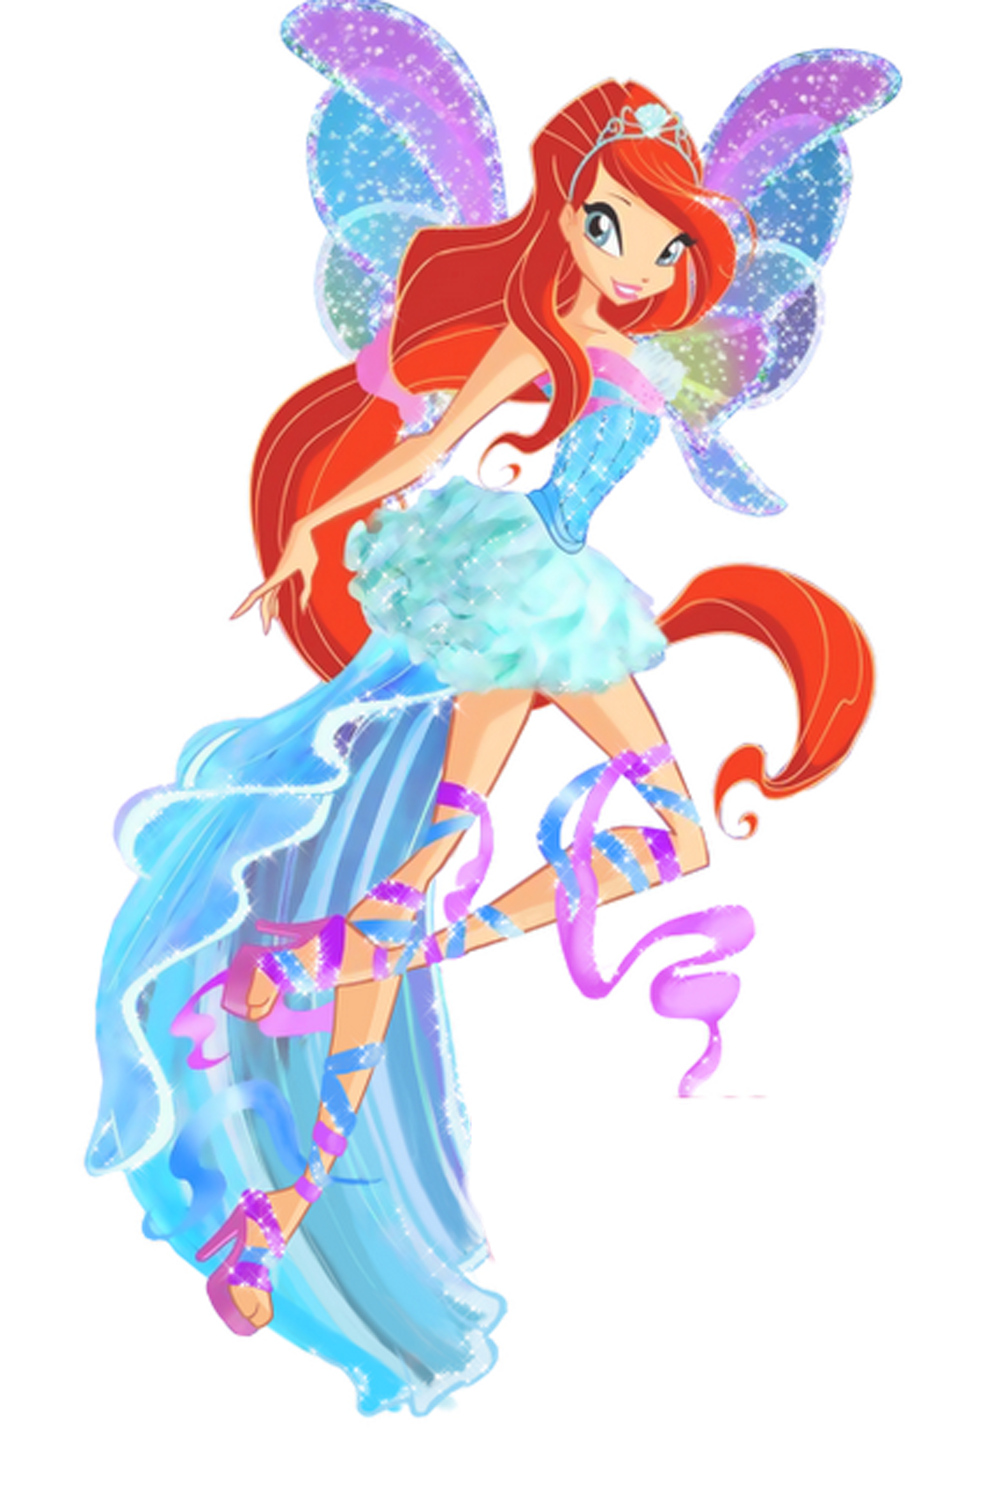 Bloom harmonix winx club a c pinterest winx club - Bloom dessin anime ...